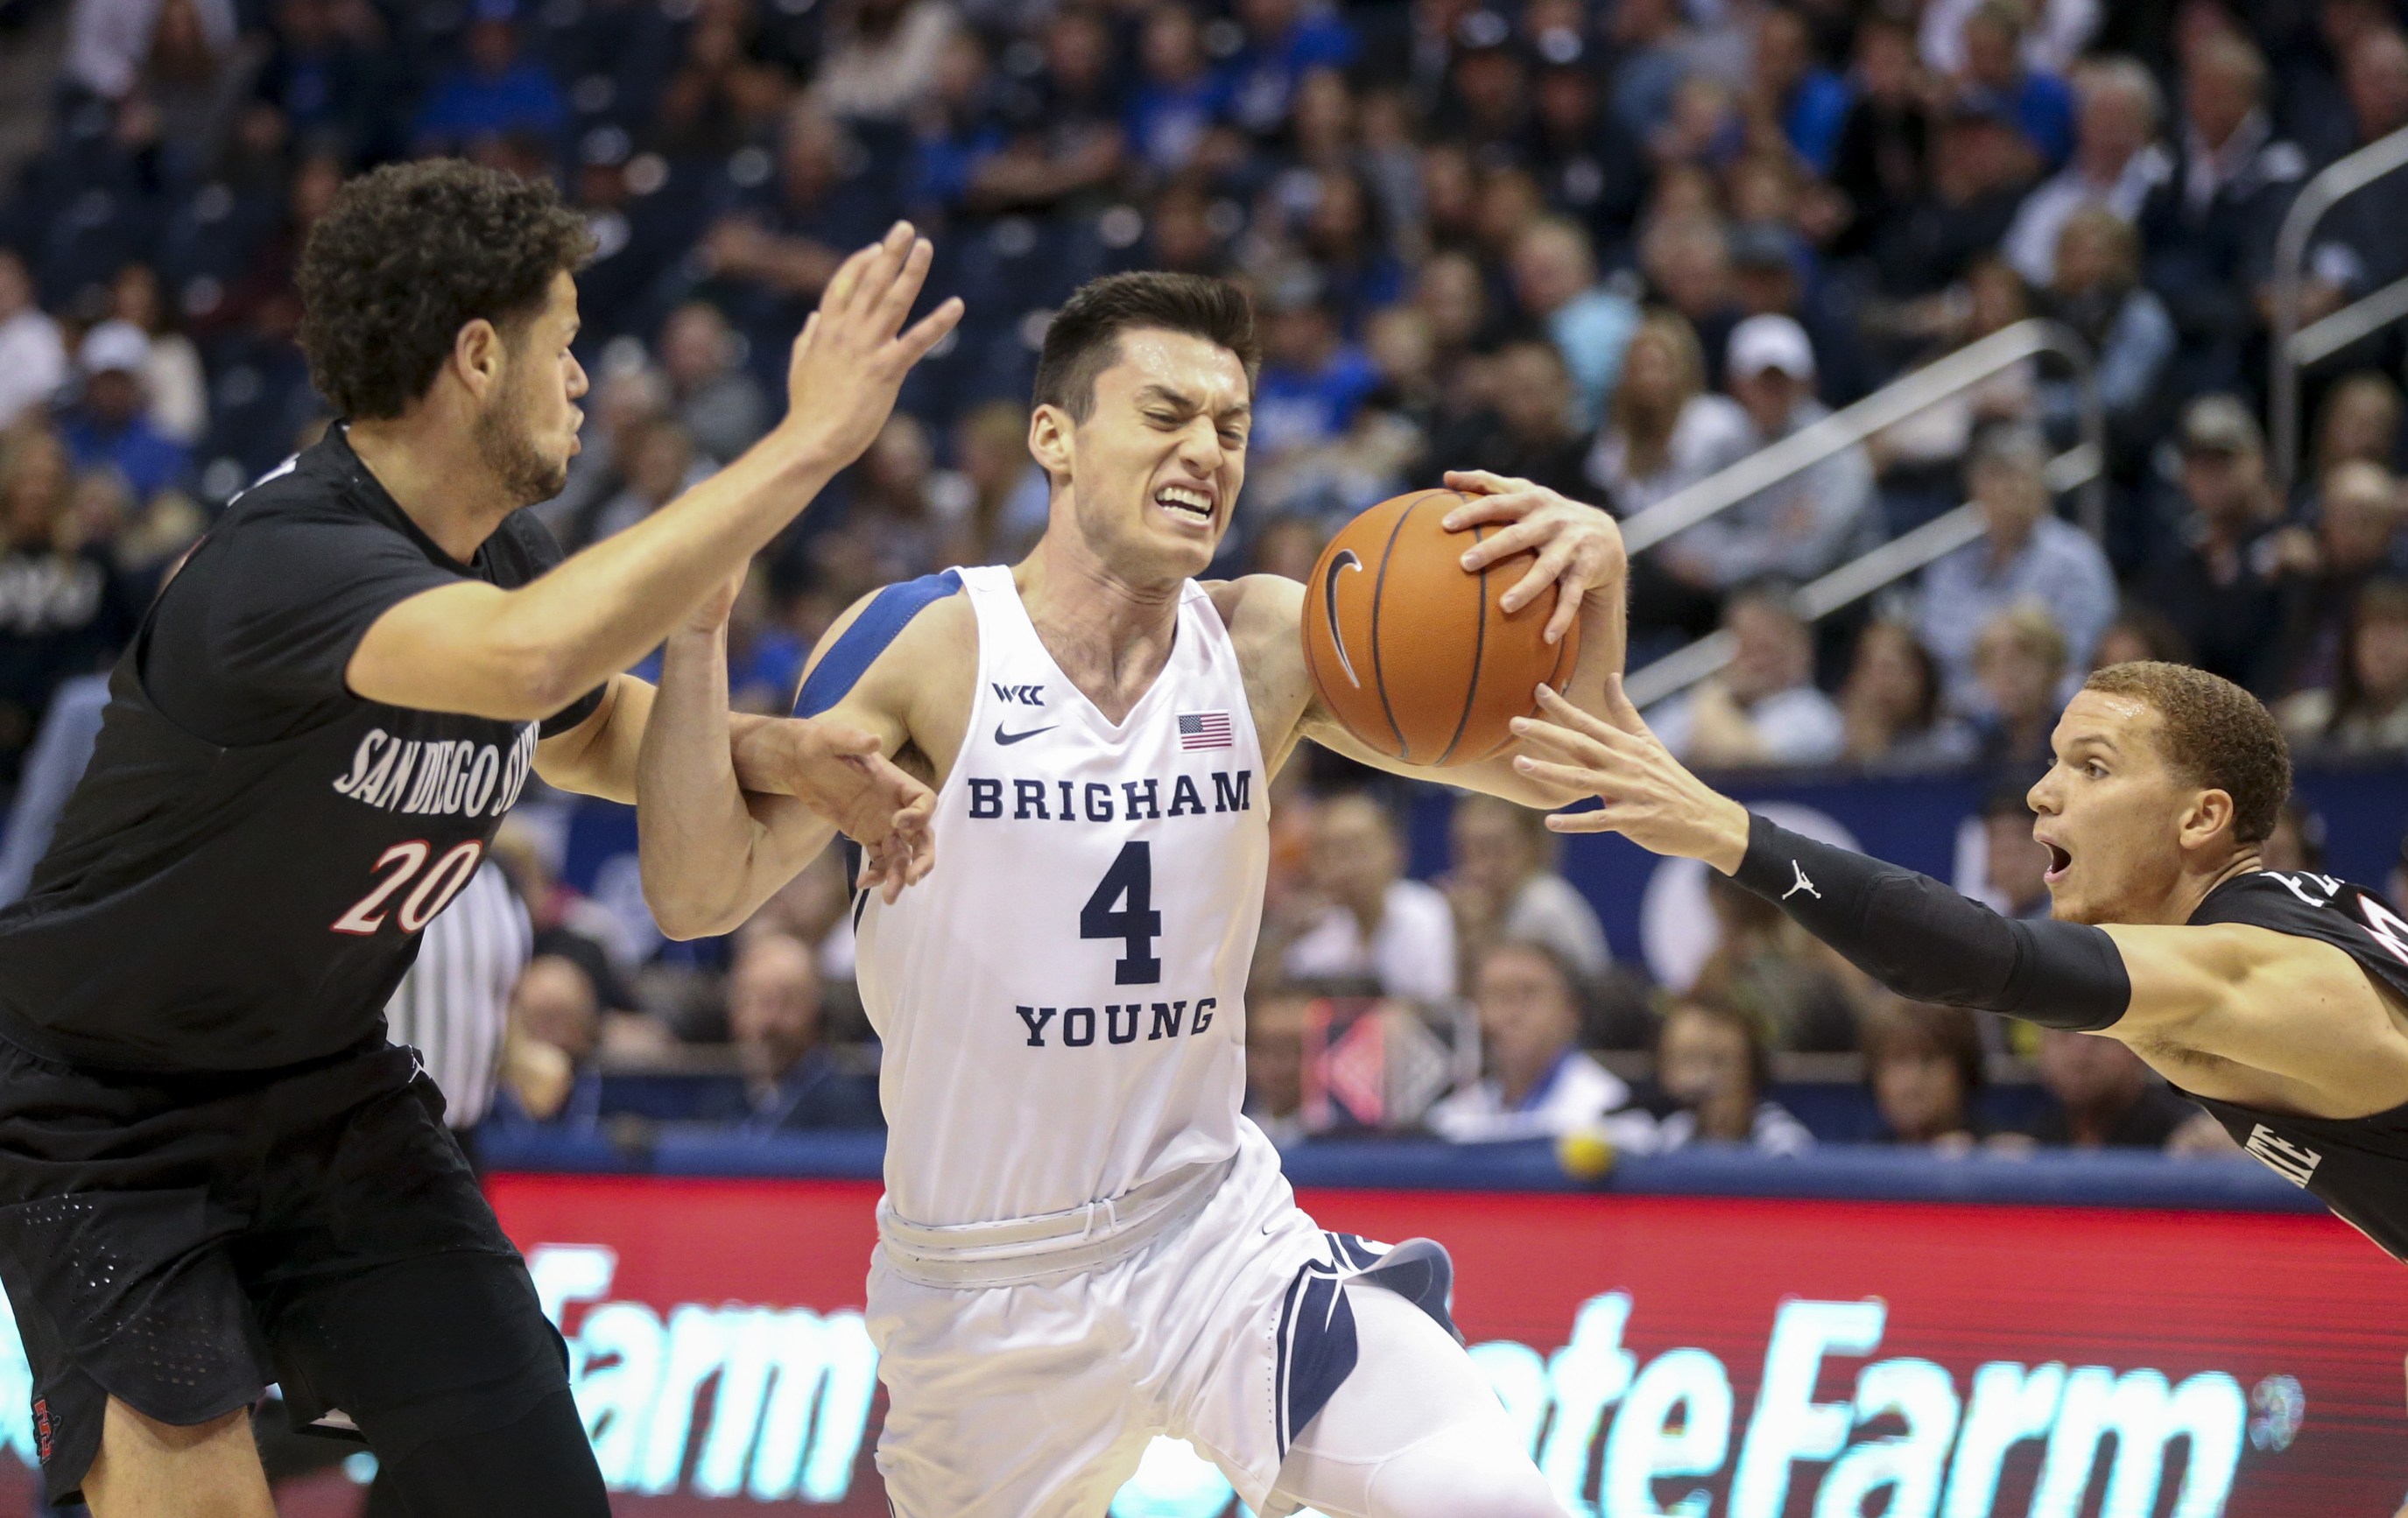 Brigham Young Cougars guard Alex Barcello (4) runs through San Diego State Aztecs guards Jordan Schakel (20) and Malachi Flynn (22) during the first half of an NCAA basketball game at Marriott Center in Provo on Saturday, Nov. 9, 2019.